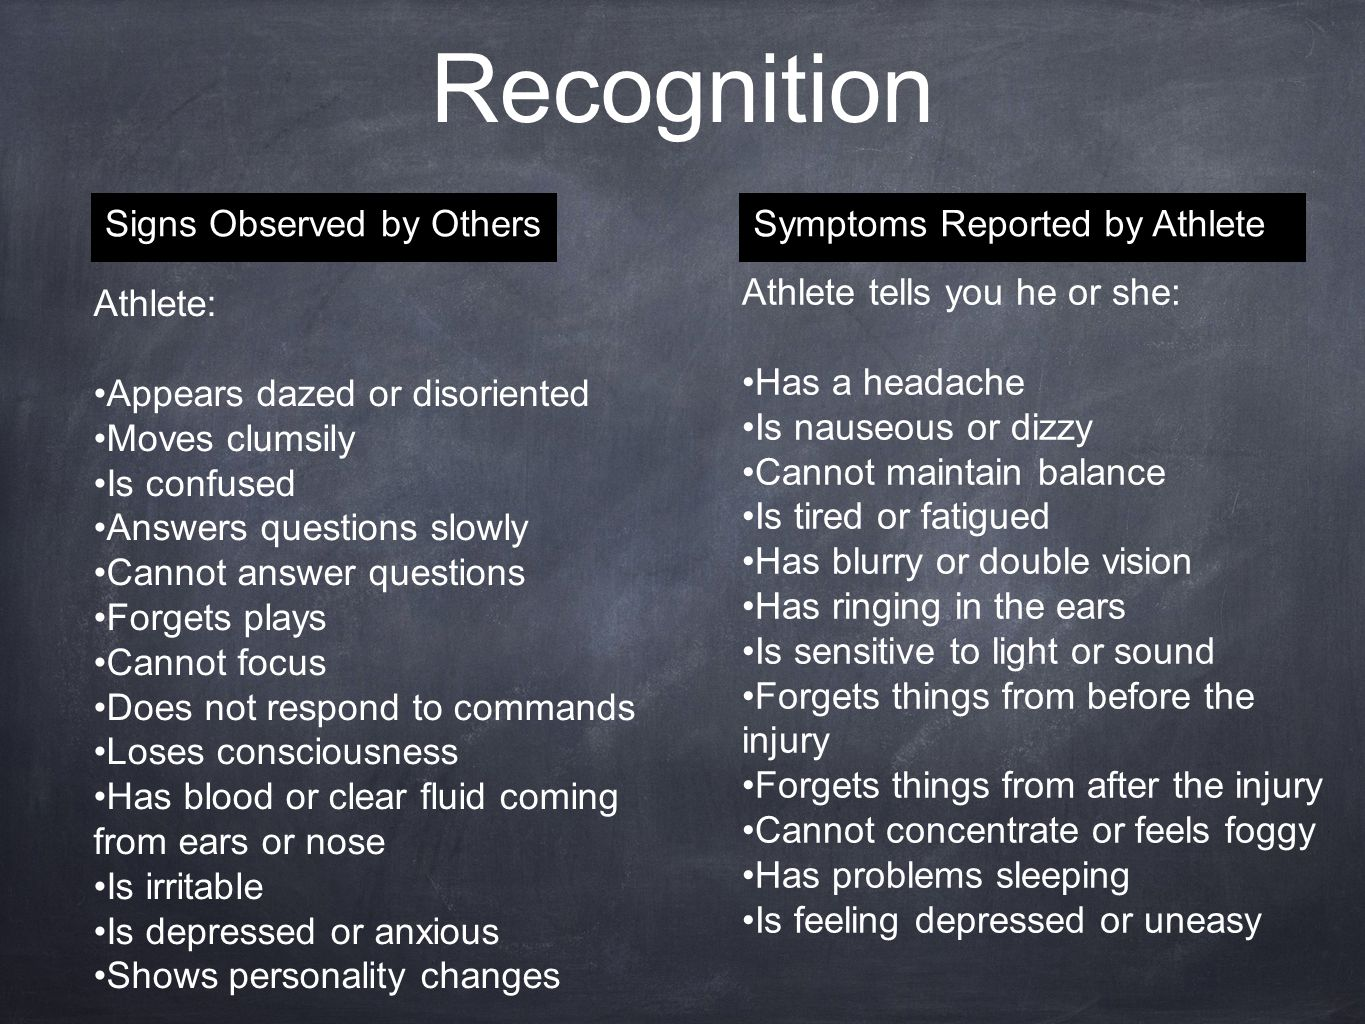 Recognition Symptoms Reported by AthleteSigns Observed by Others Athlete tells you he or she: Has a headache Is nauseous or dizzy Cannot maintain balance Is tired or fatigued Has blurry or double vision Has ringing in the ears Is sensitive to light or sound Forgets things from before the injury Forgets things from after the injury Cannot concentrate or feels foggy Has problems sleeping Is feeling depressed or uneasy Athlete: Appears dazed or disoriented Moves clumsily Is confused Answers questions slowly Cannot answer questions Forgets plays Cannot focus Does not respond to commands Loses consciousness Has blood or clear fluid coming from ears or nose Is irritable Is depressed or anxious Shows personality changes